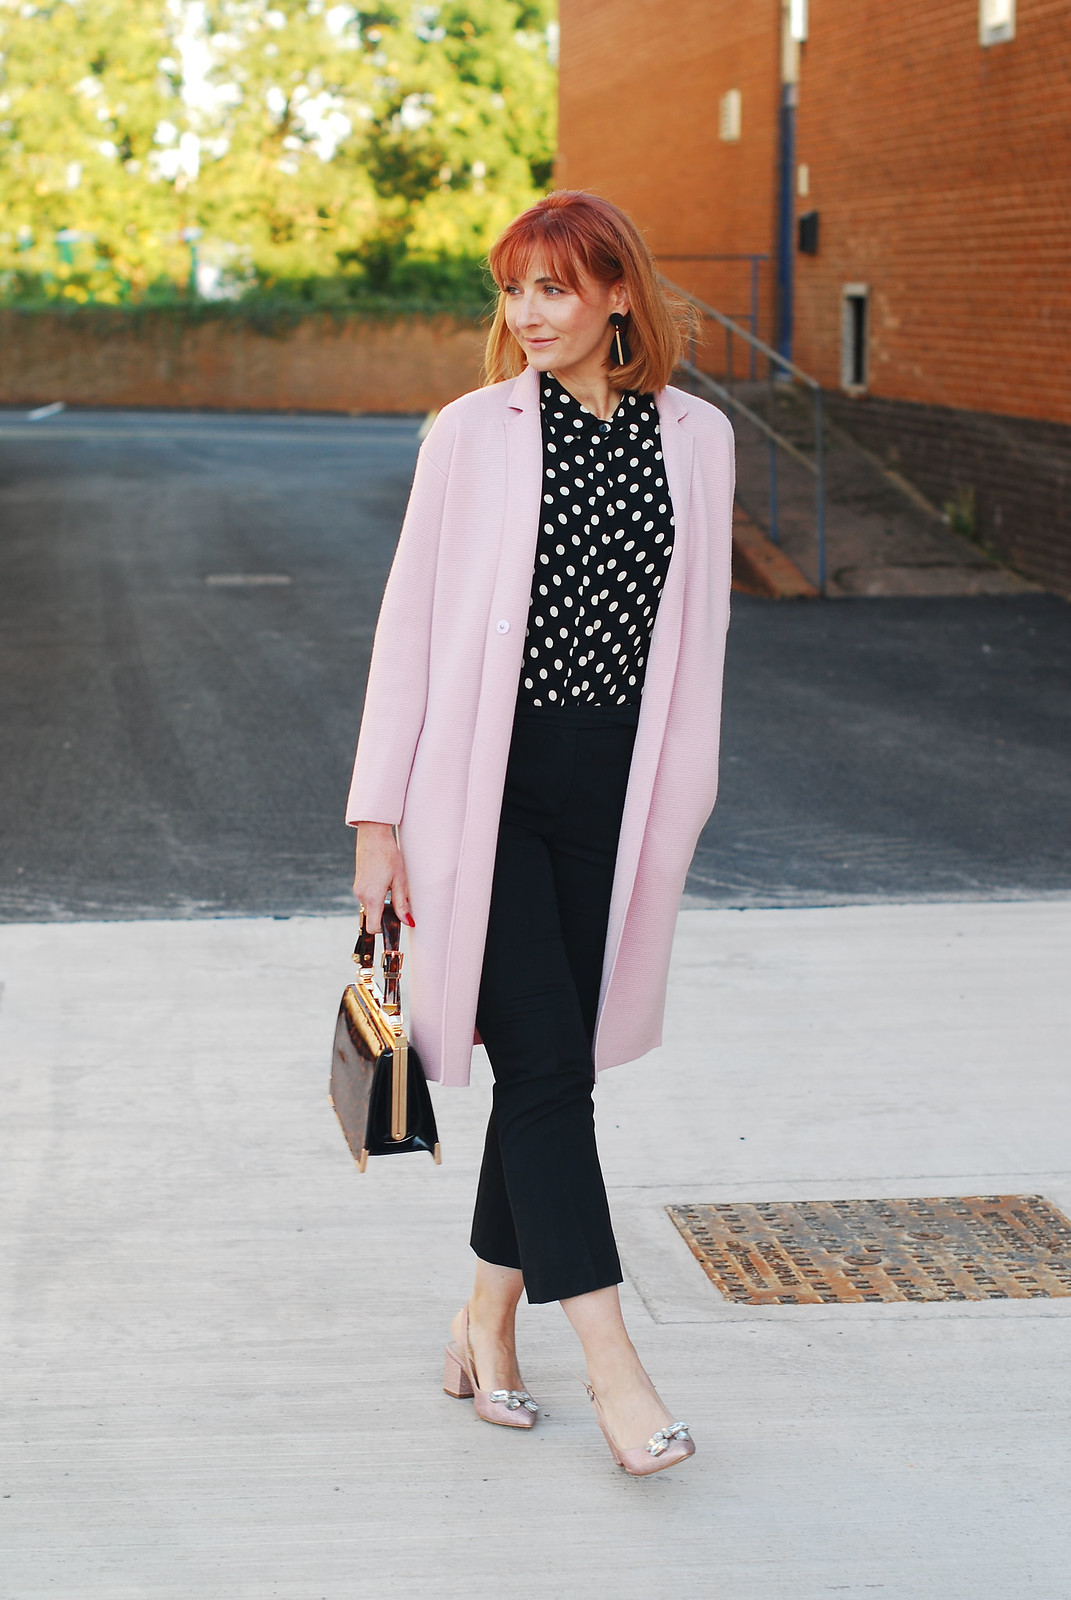 Retro 80s styling: Pink Winser coatigan and black and white polka dots, block heel pink glitter shoes   Not Dressed As Lamb, over 40 style